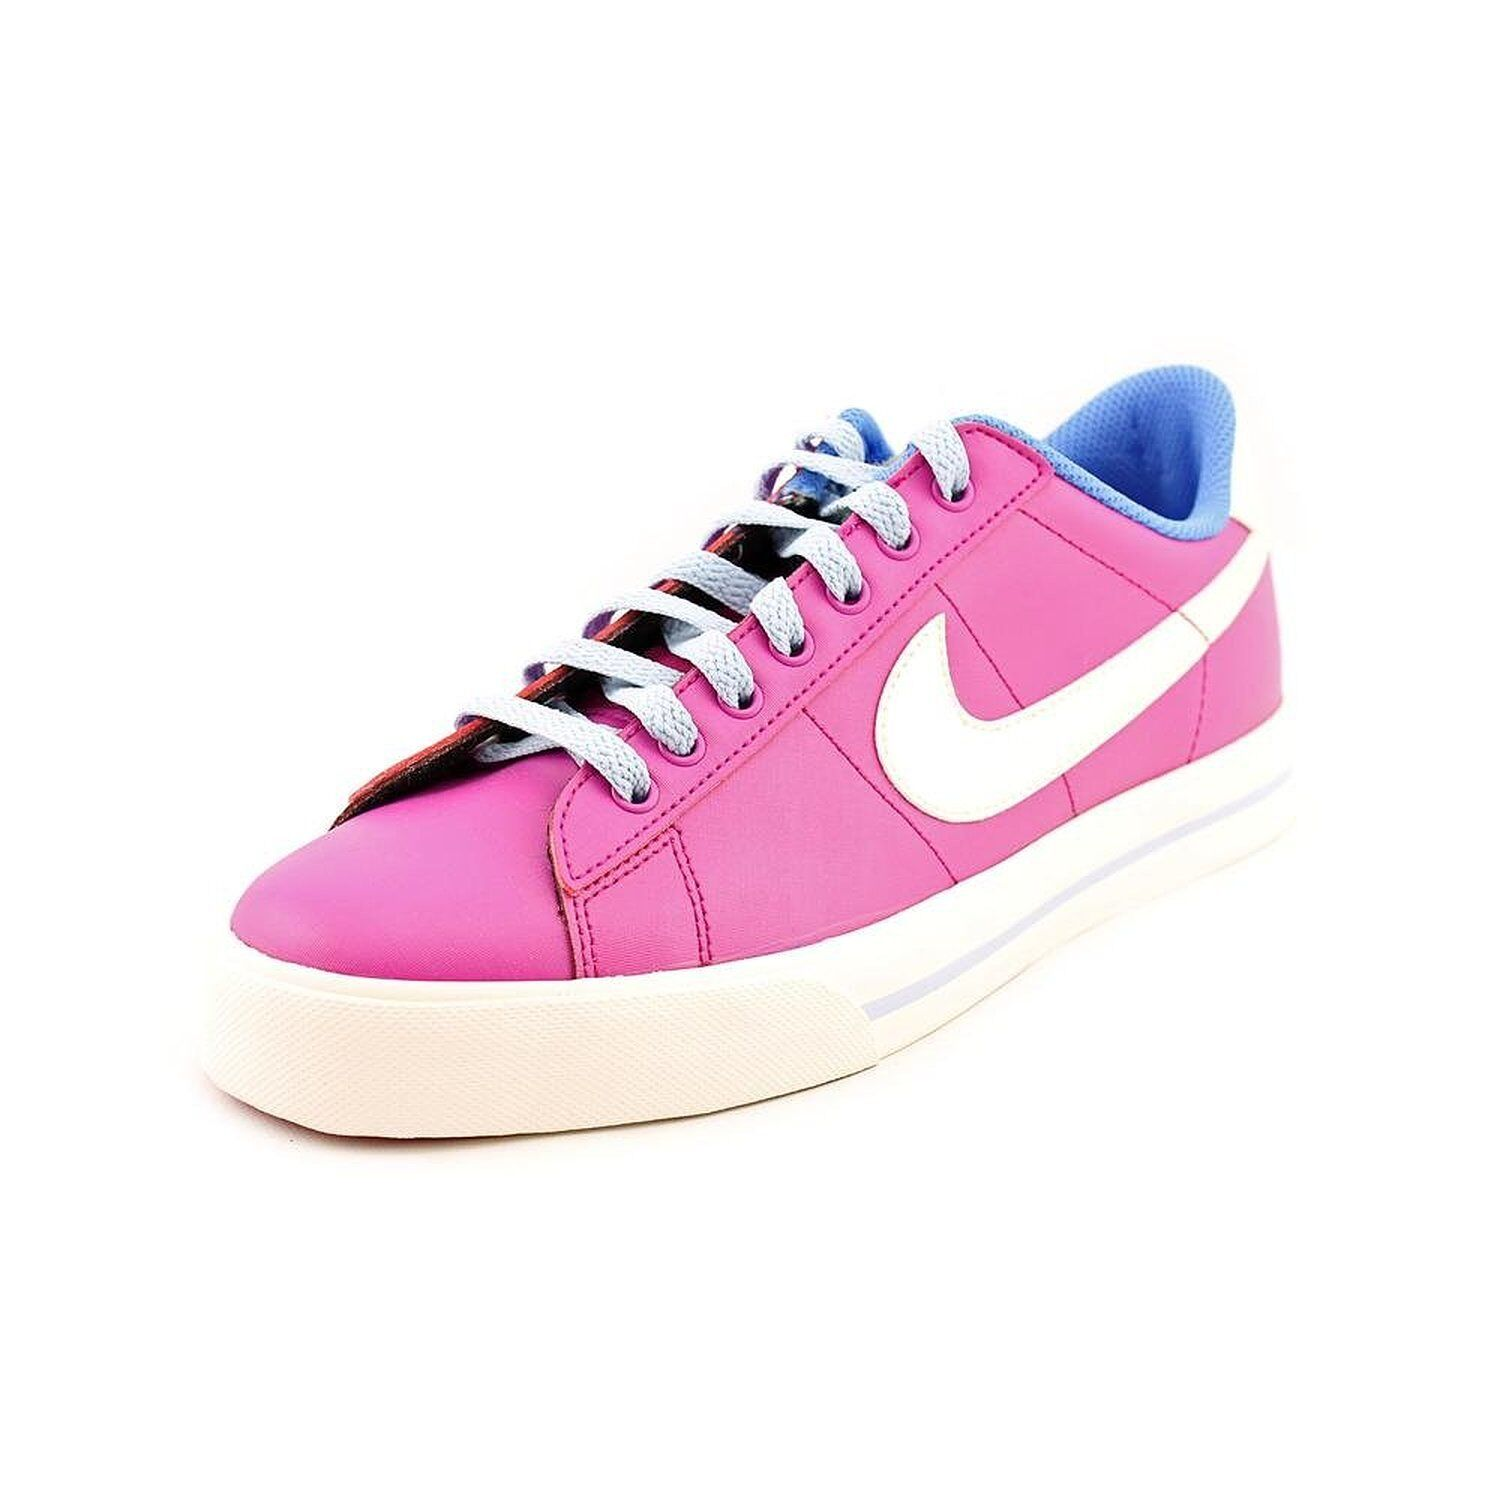 Nike Wmns 354496 Sweet Classic Leather SHOES Pink/Blue/White, 354496 Wmns 602 Sizes 7-9.5 addfd1